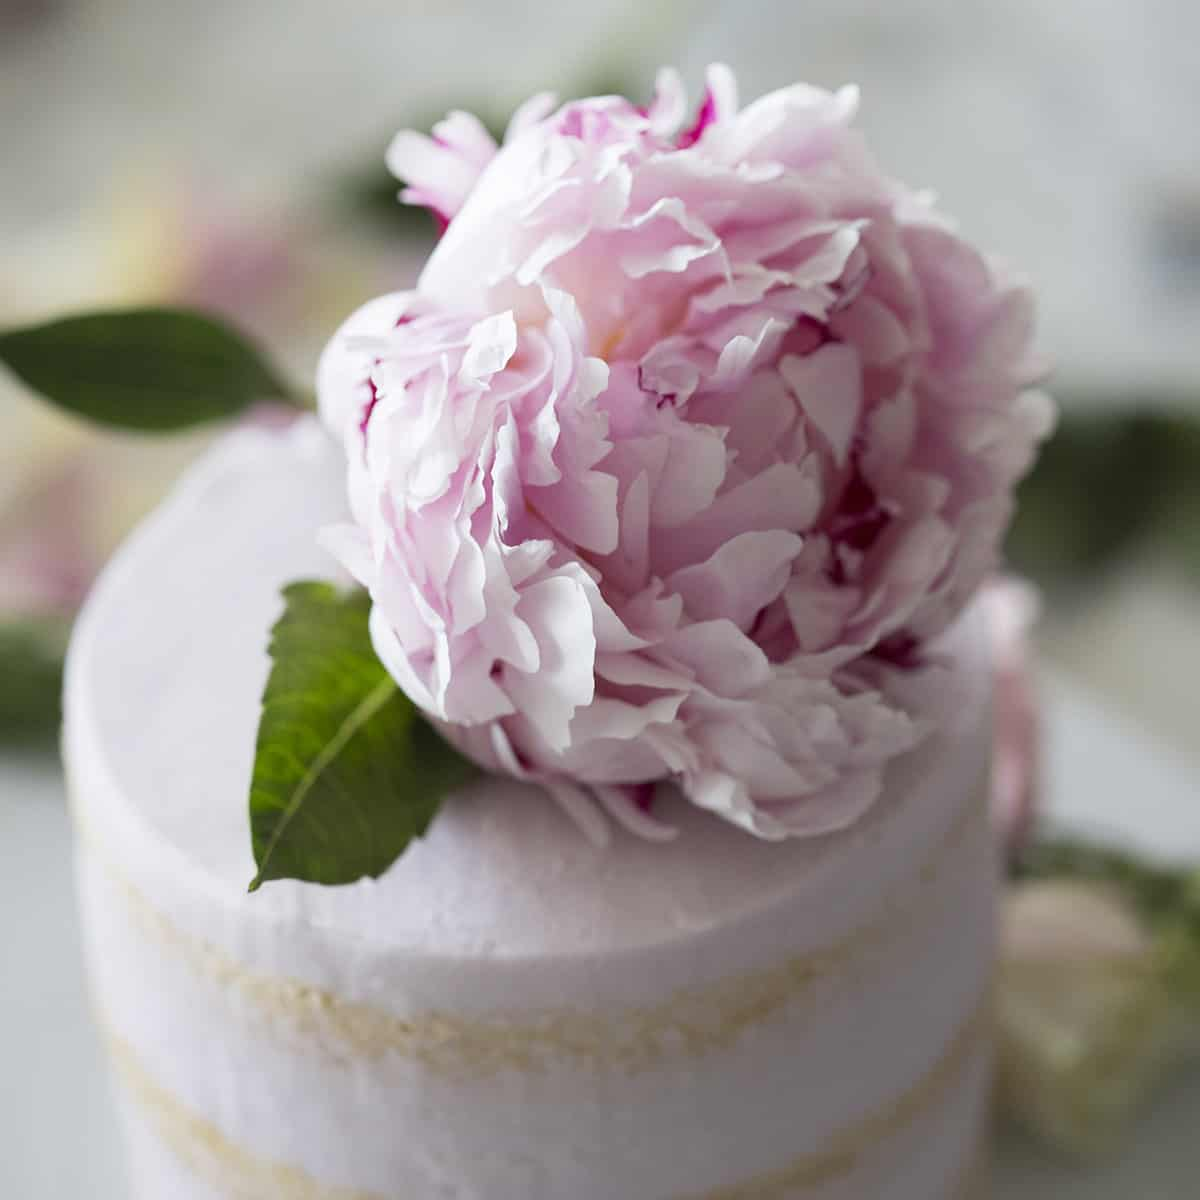 A close up photo of a giant pink peony on a dainty soft pink vanilla cake.